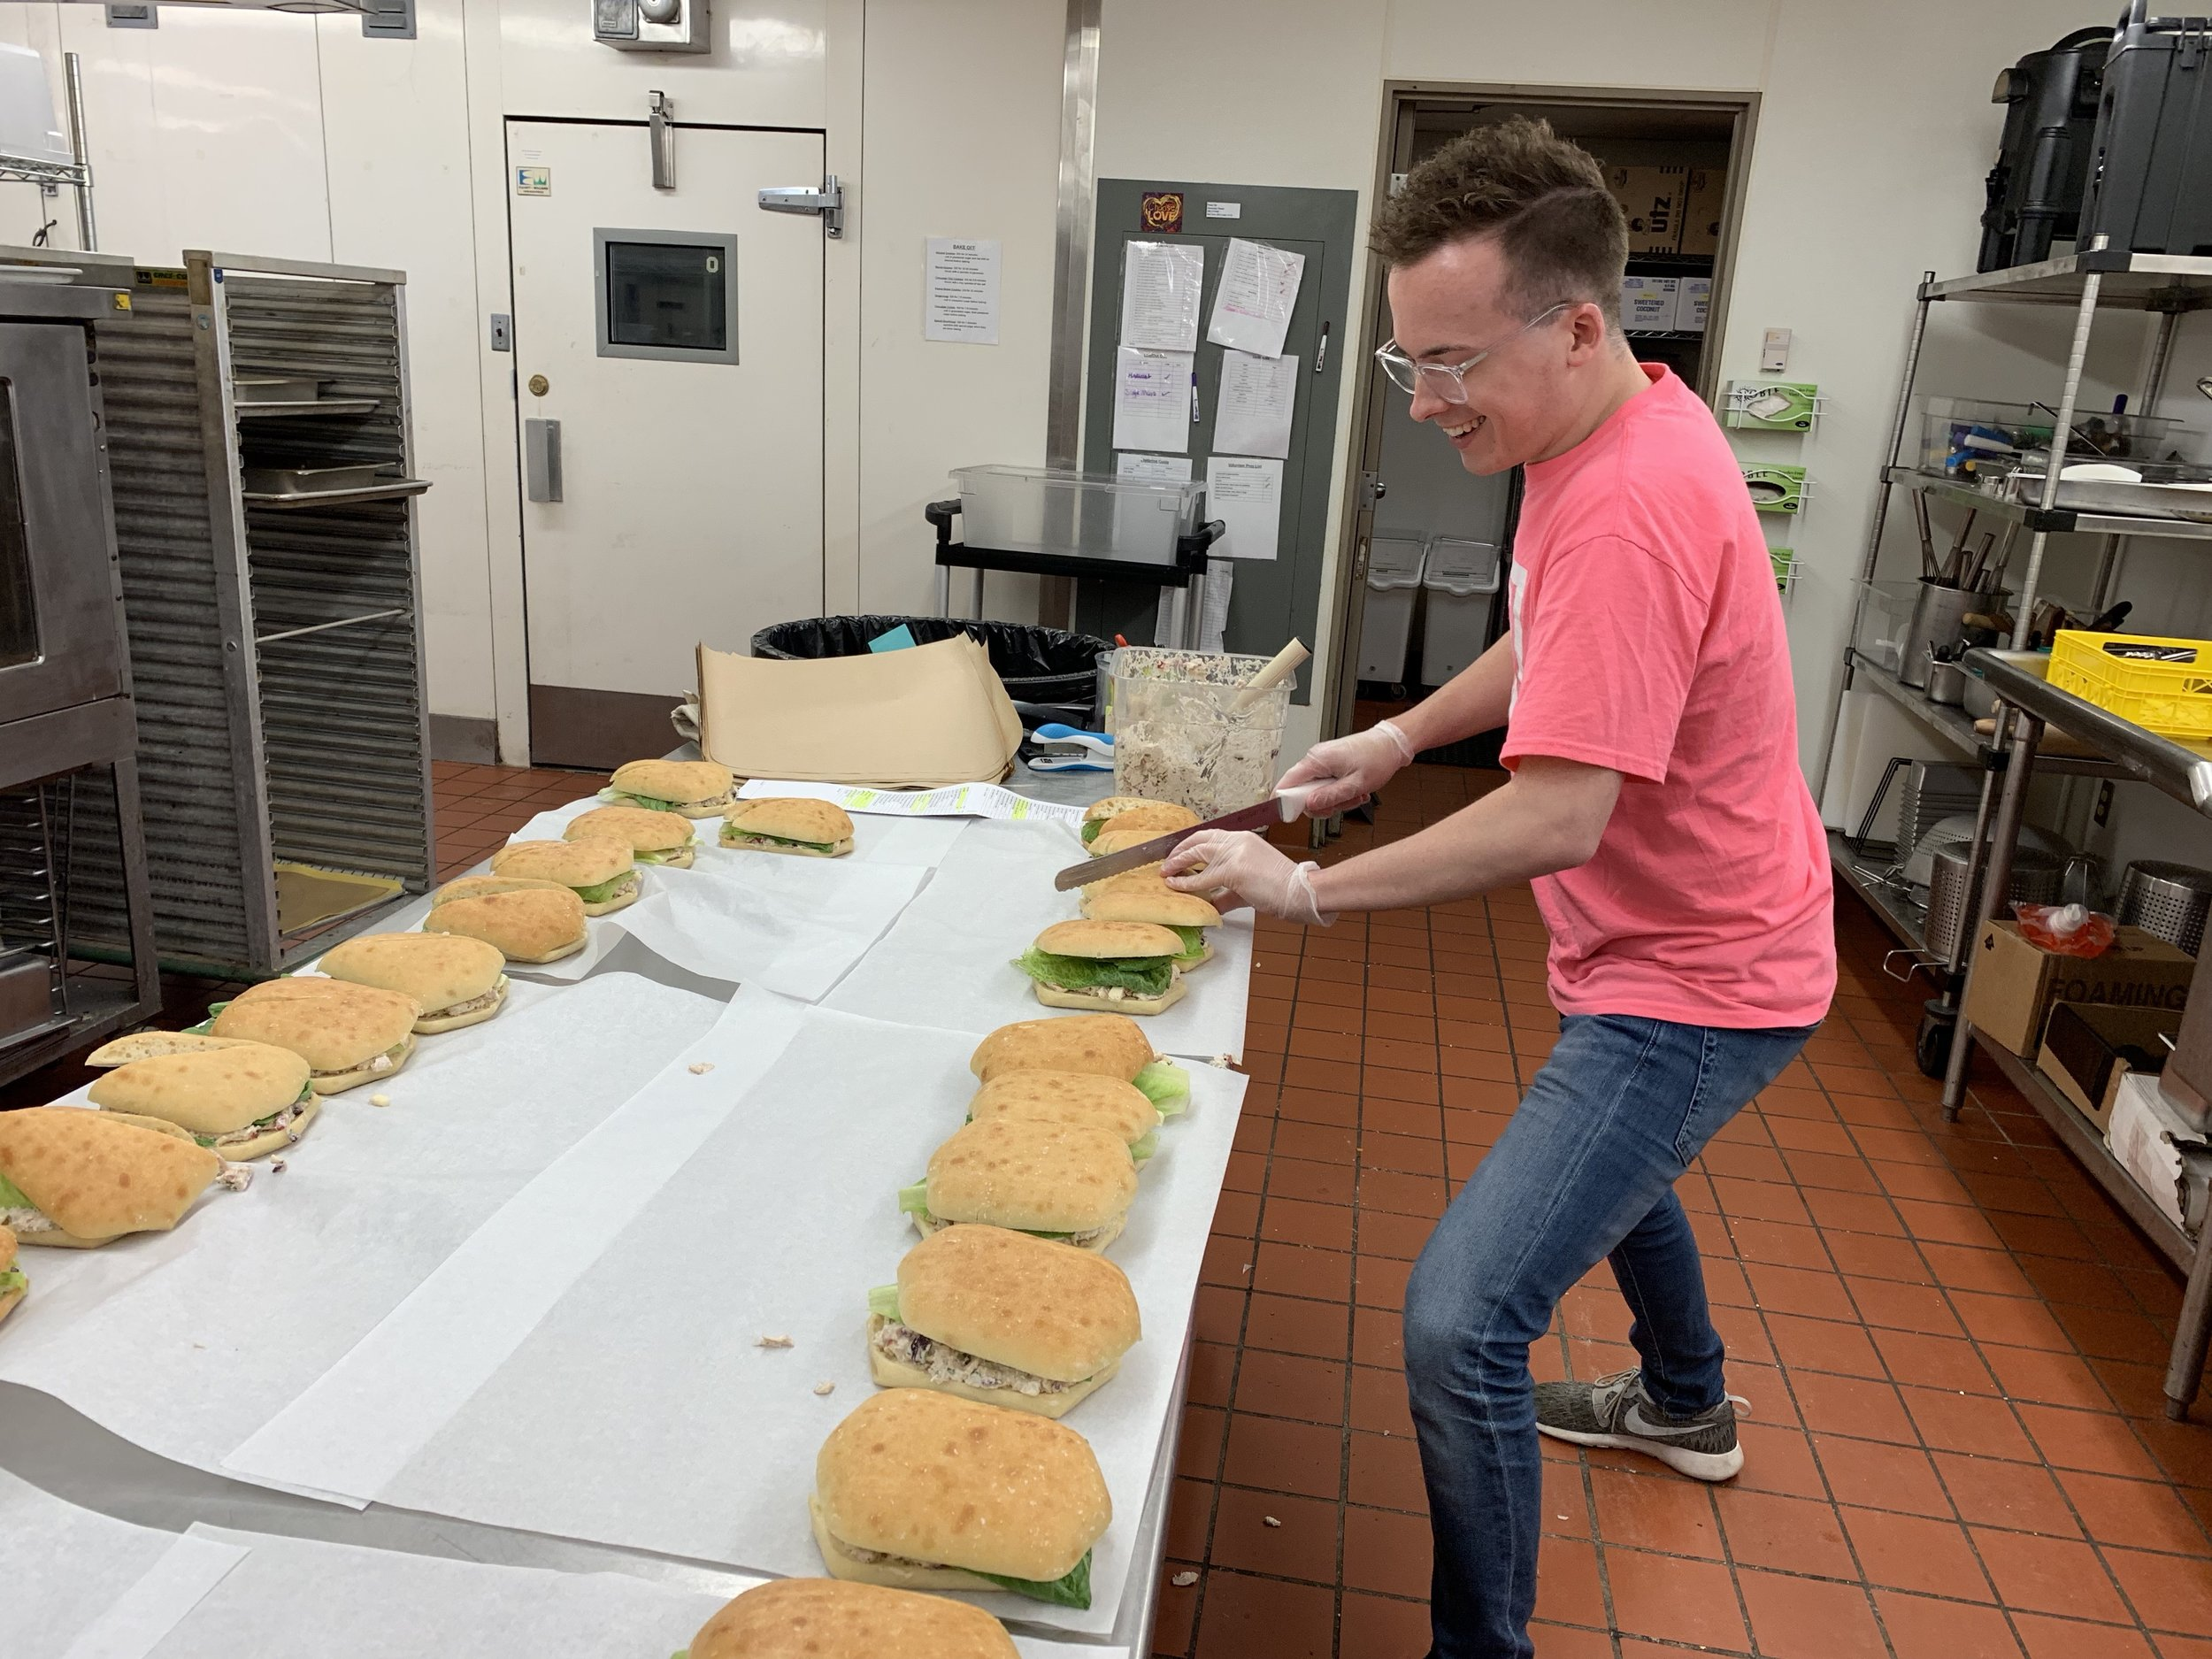 Cameron prepares sandwiches in the Freedom a la Cart kitchen